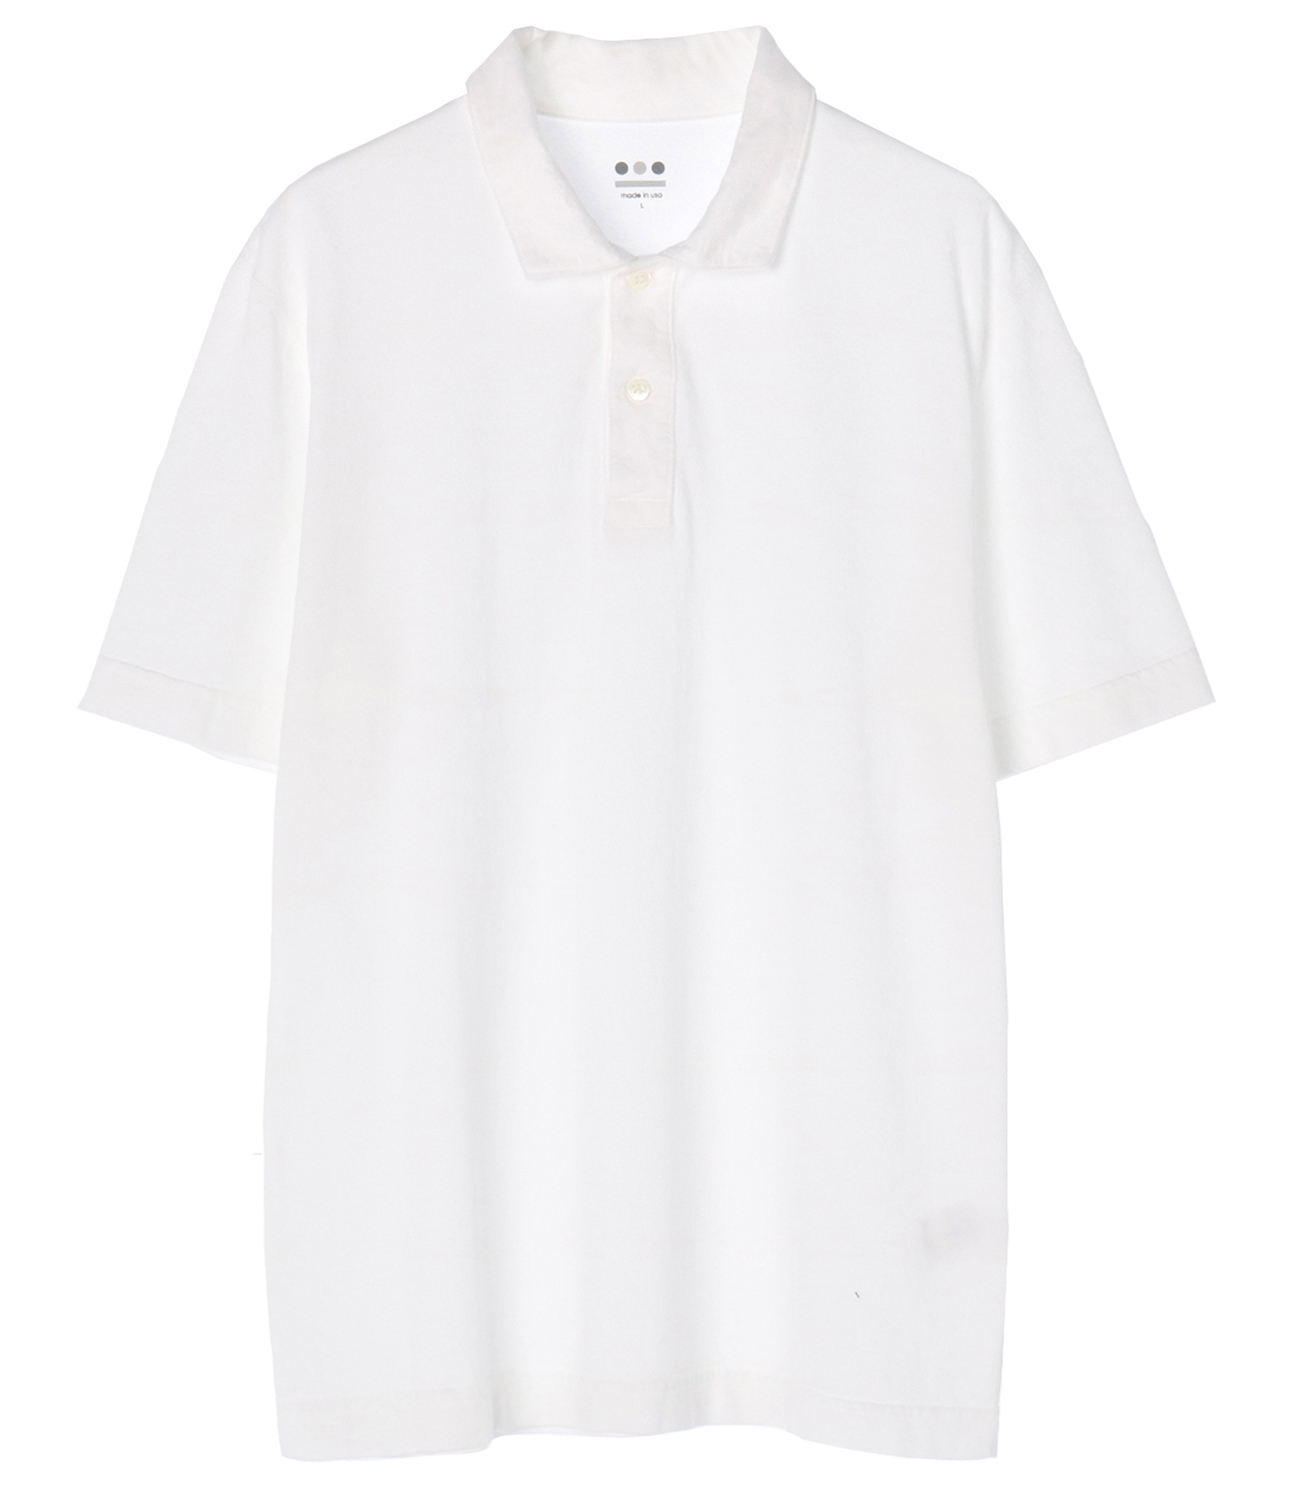 short slv polo 詳細画像 white 1